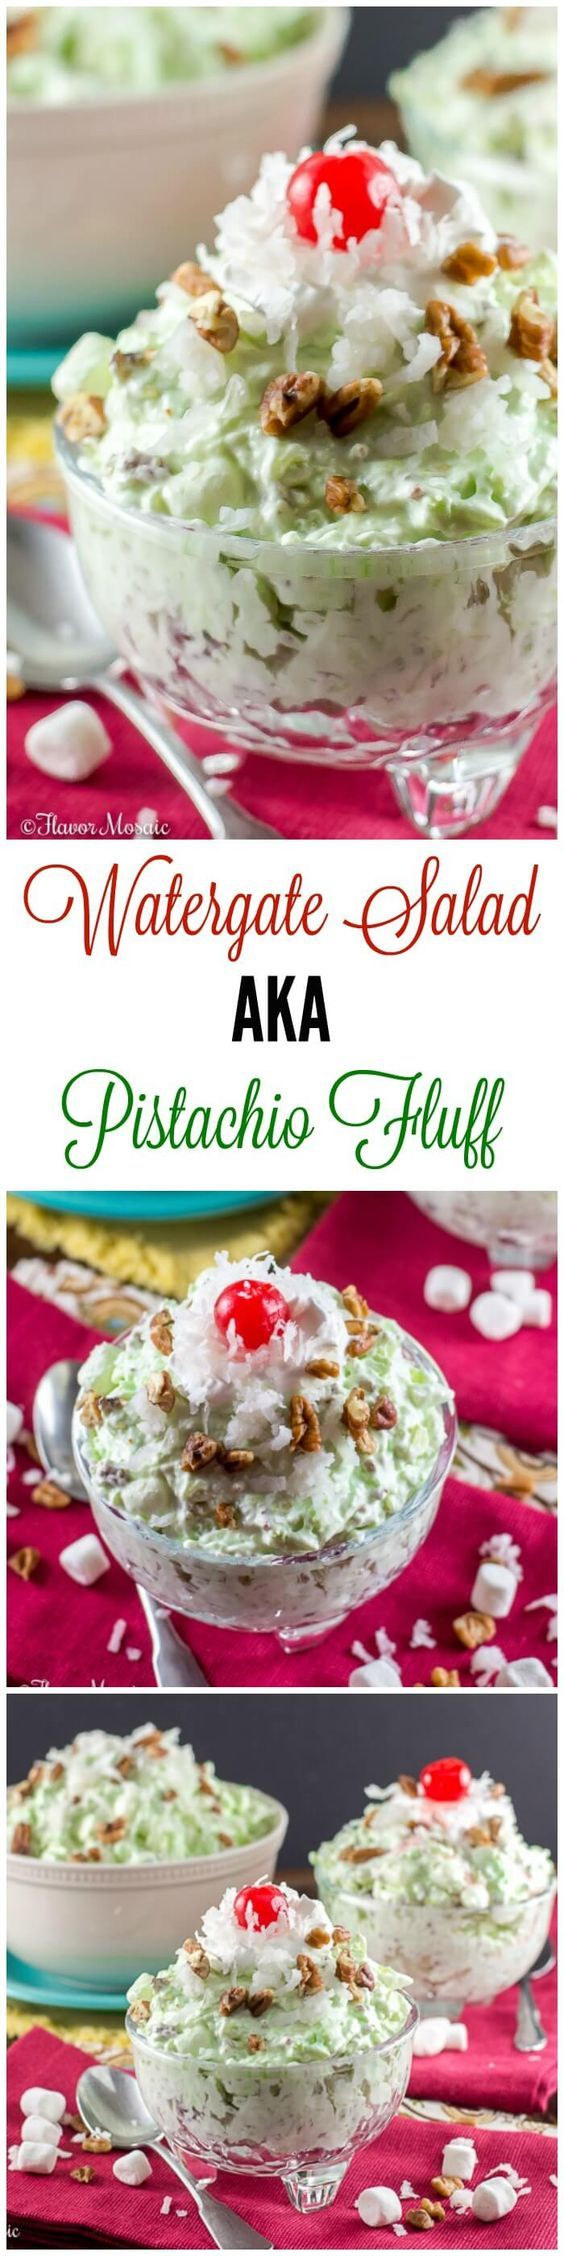 This Watergate Salad, also known as Pistachio Salad, Pistachio Delight or Pistachio Fluff or Green Fluff, is a sweet, cool, crunchy dessert made with pistachio pudding, whipped topping, crushed pineapple, mini marshmallows, pecans and coconut. ~ http://FlavorMosaic.com #SundaySupper